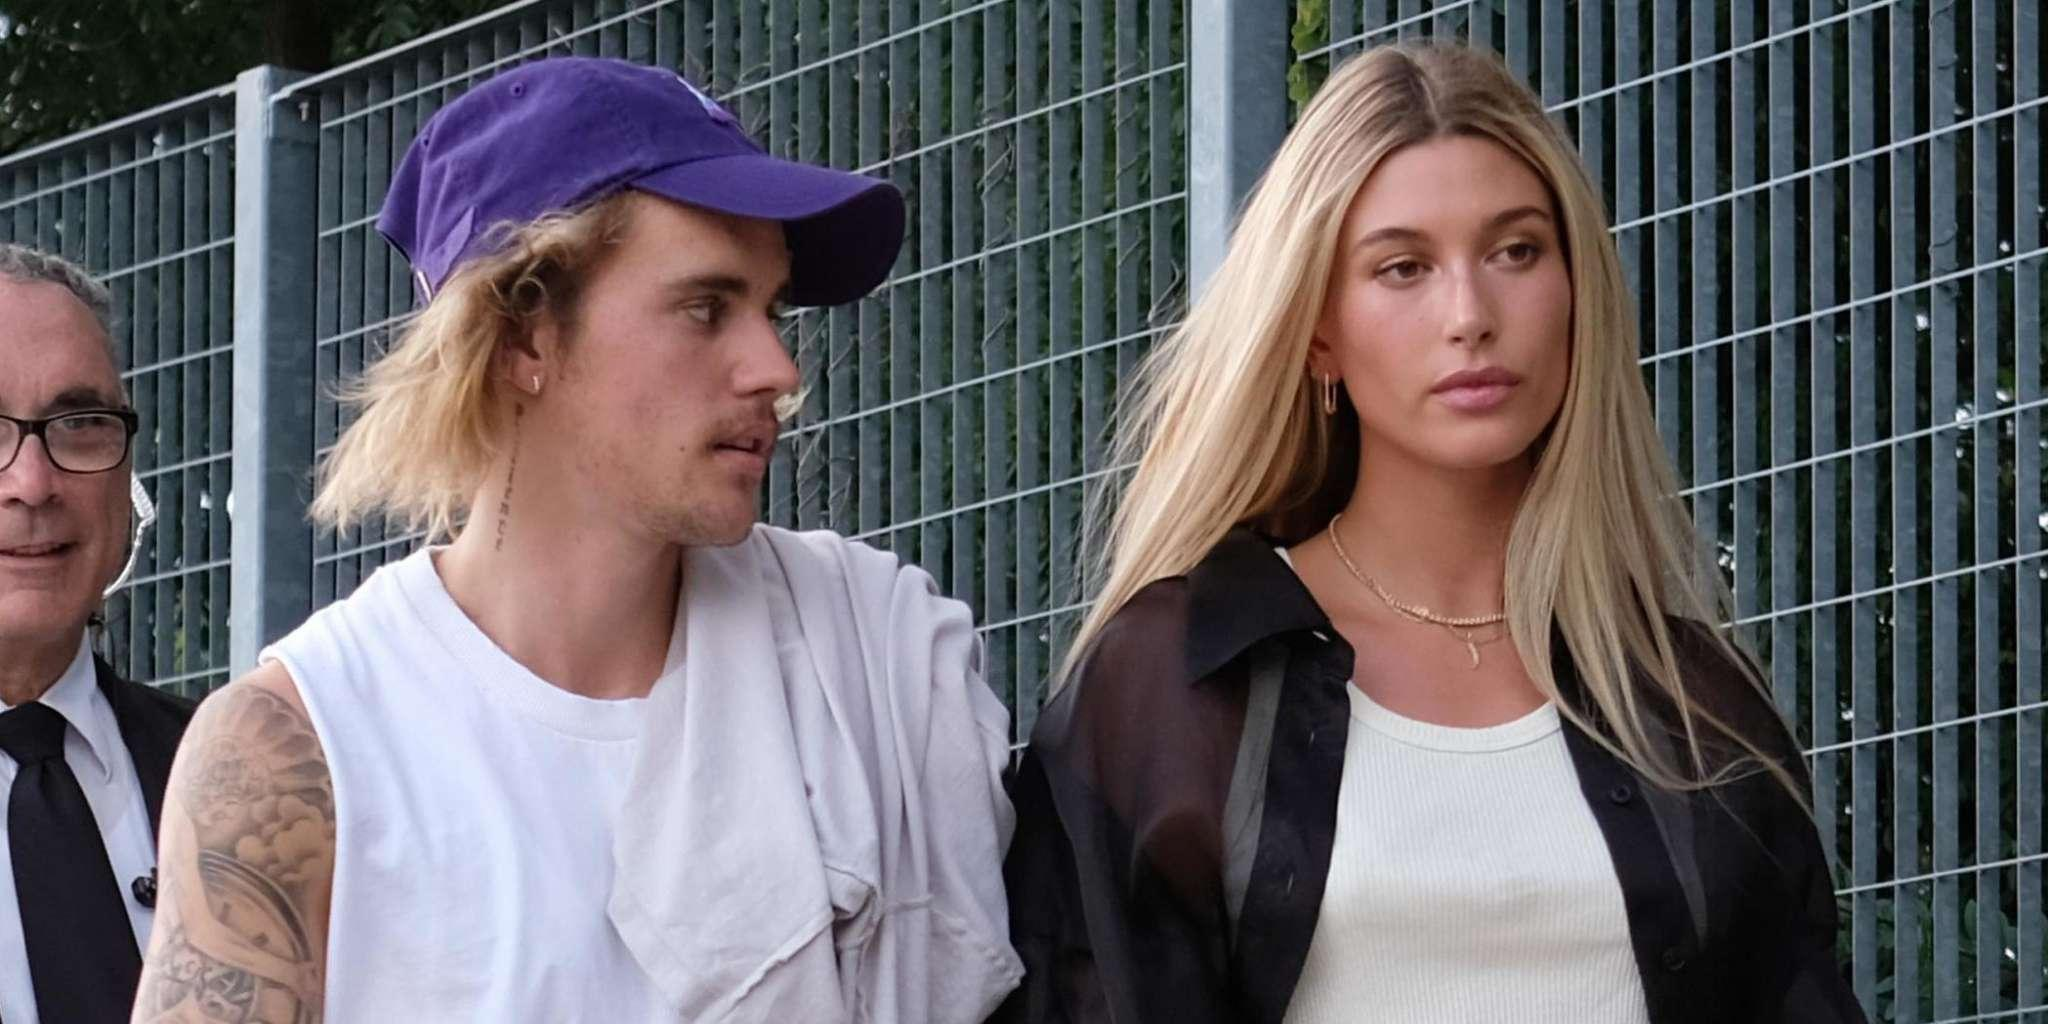 Hailey Baldwin And Justin Bieber - Model's Uncle Hopes They Won't Rush Into Having Babies!